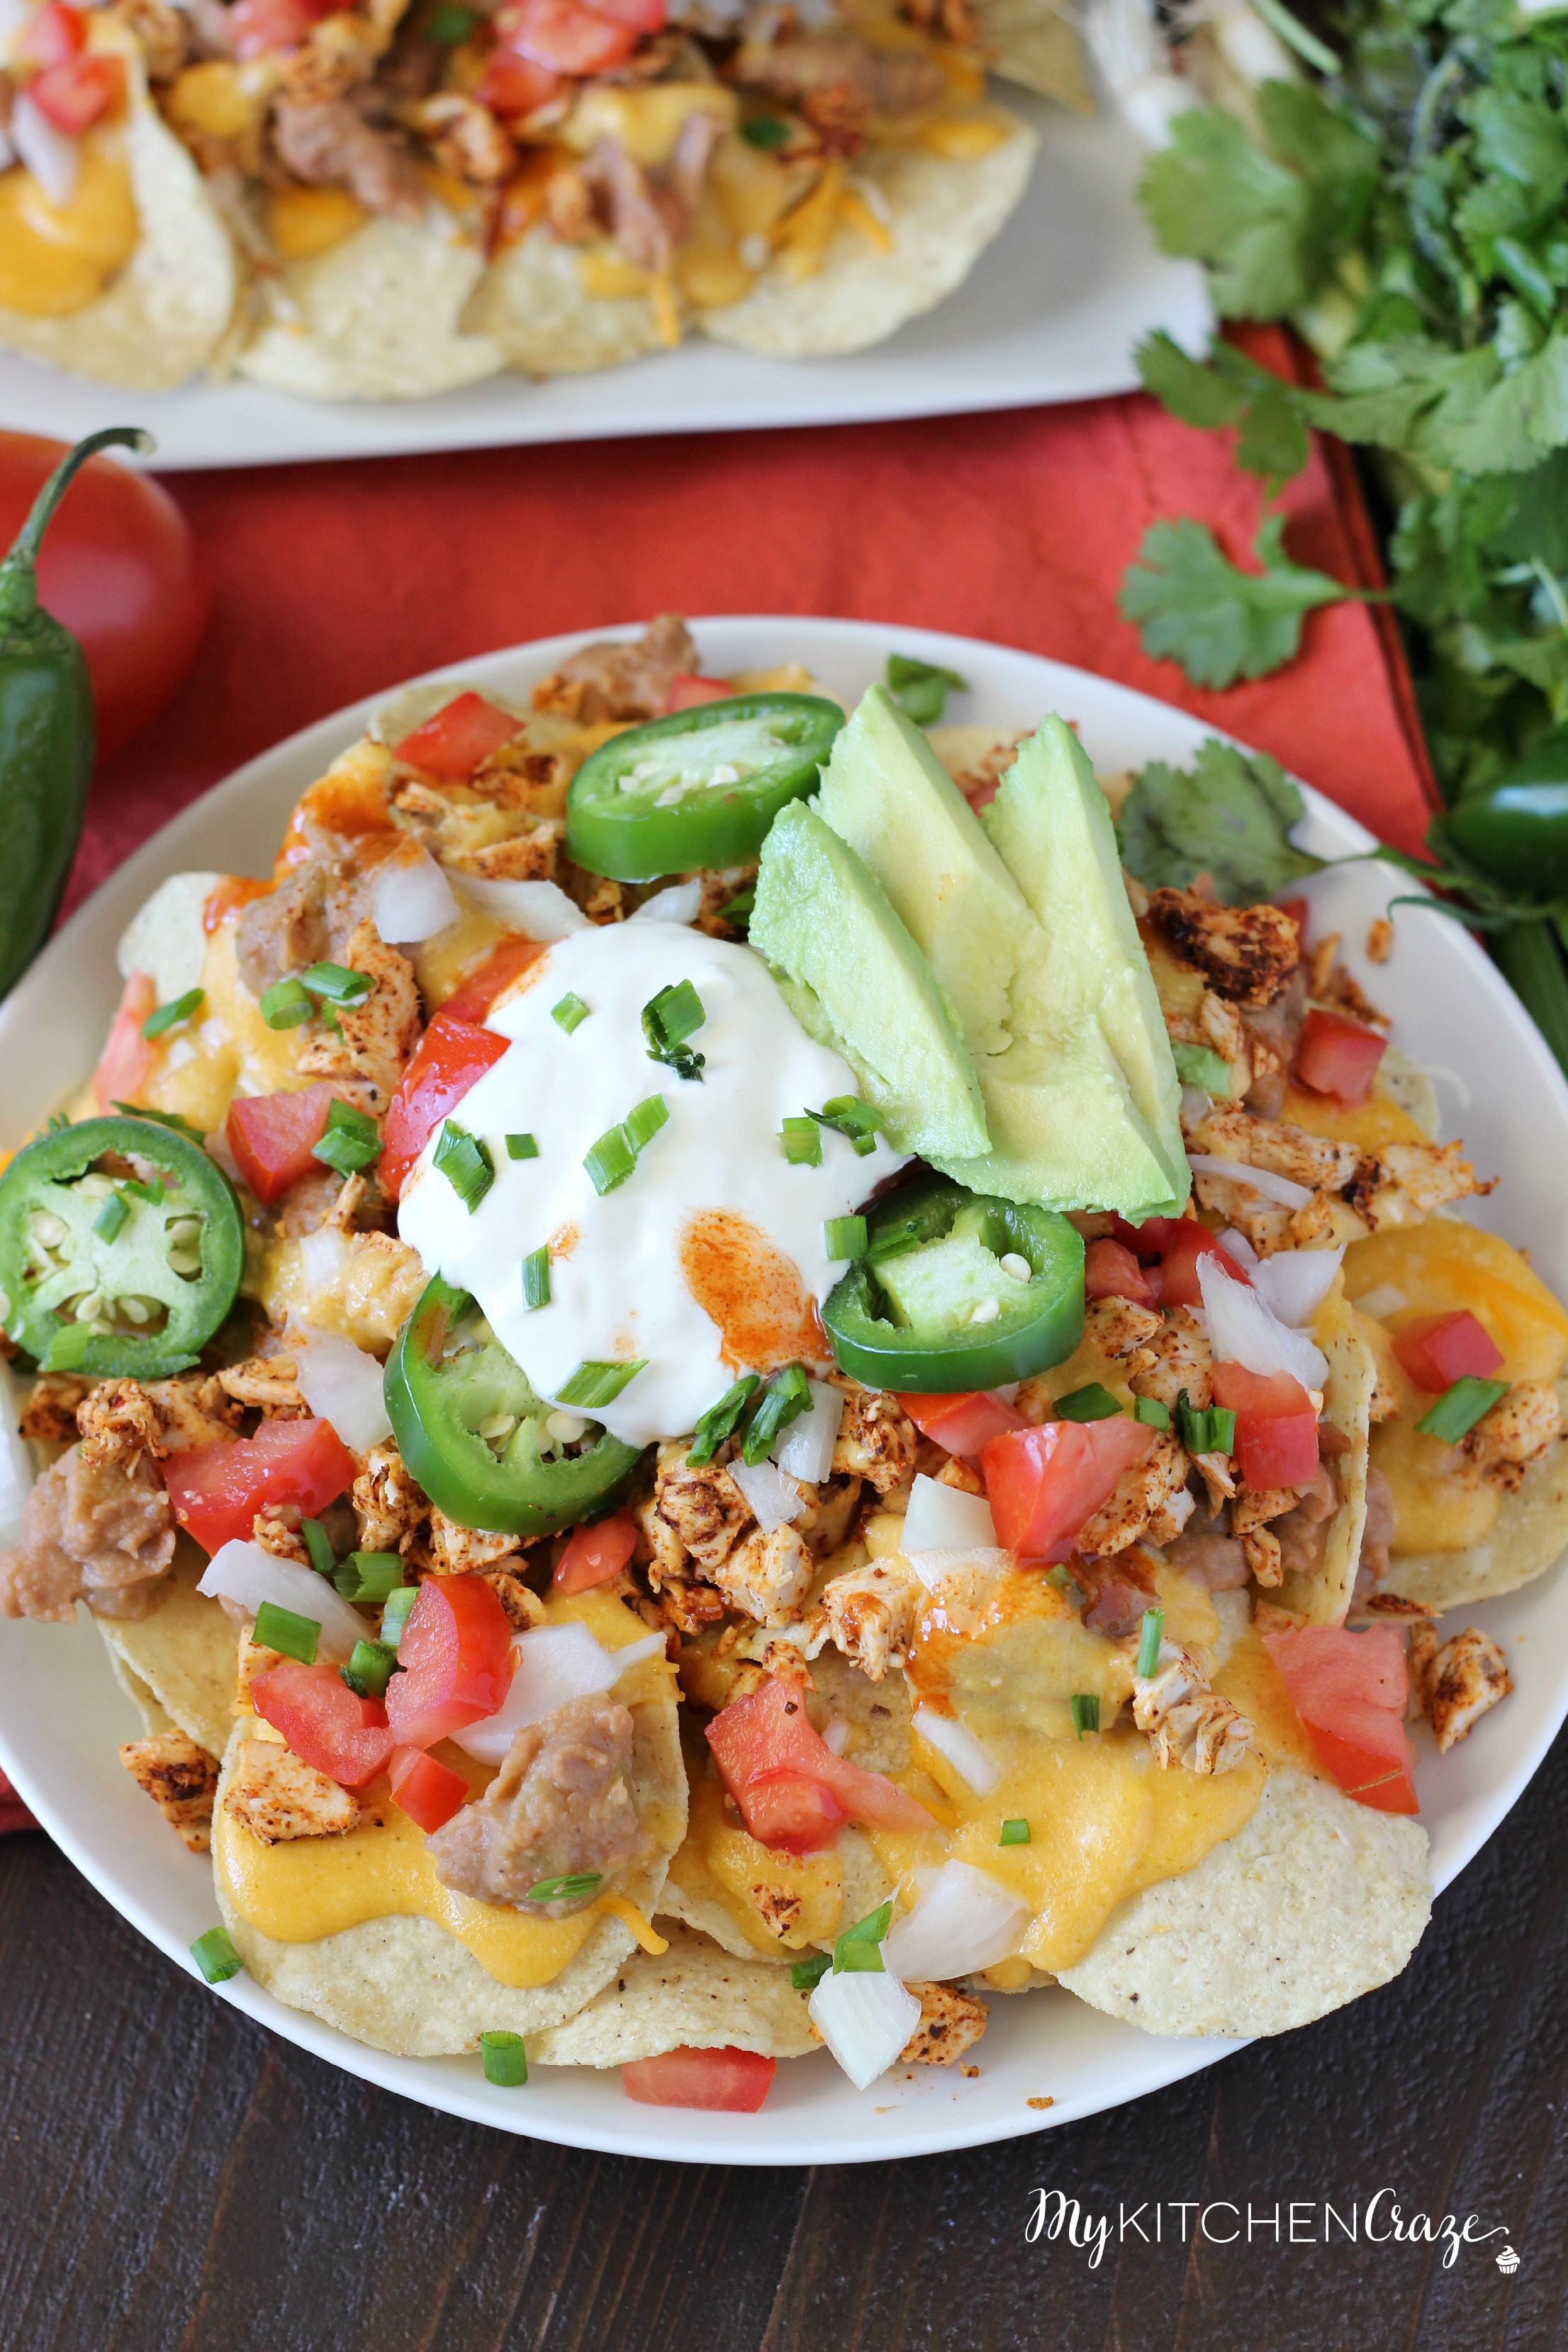 Spicy Thanksgiving Turkey Recipe  Spicy Turkey Nachos My Kitchen Craze